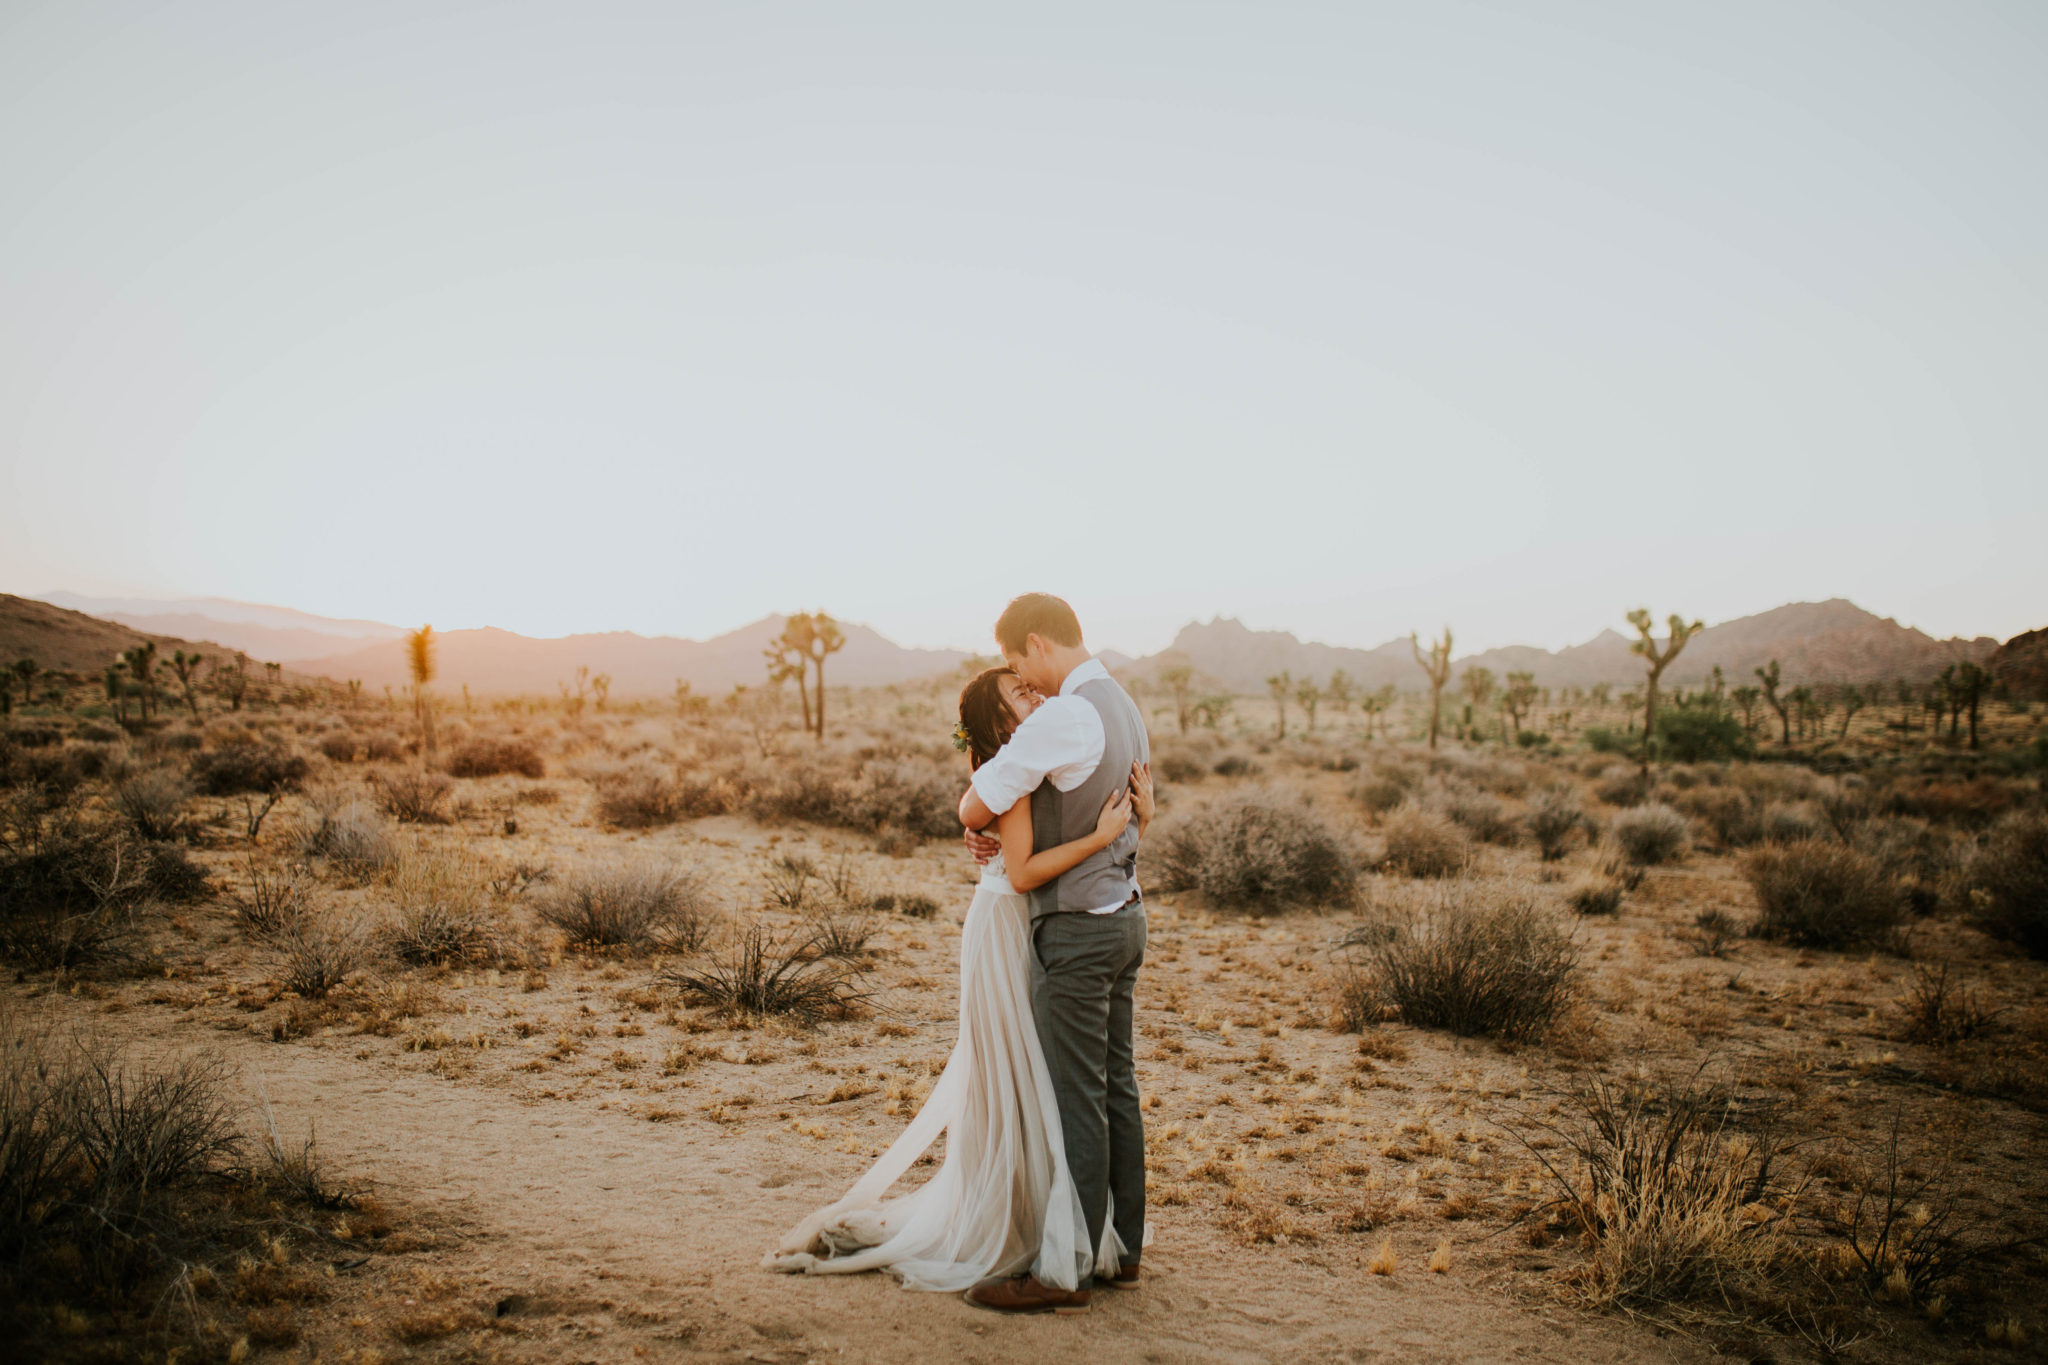 Mandy & Joey Joshua Tree Elopement California Wedding Photographer-284